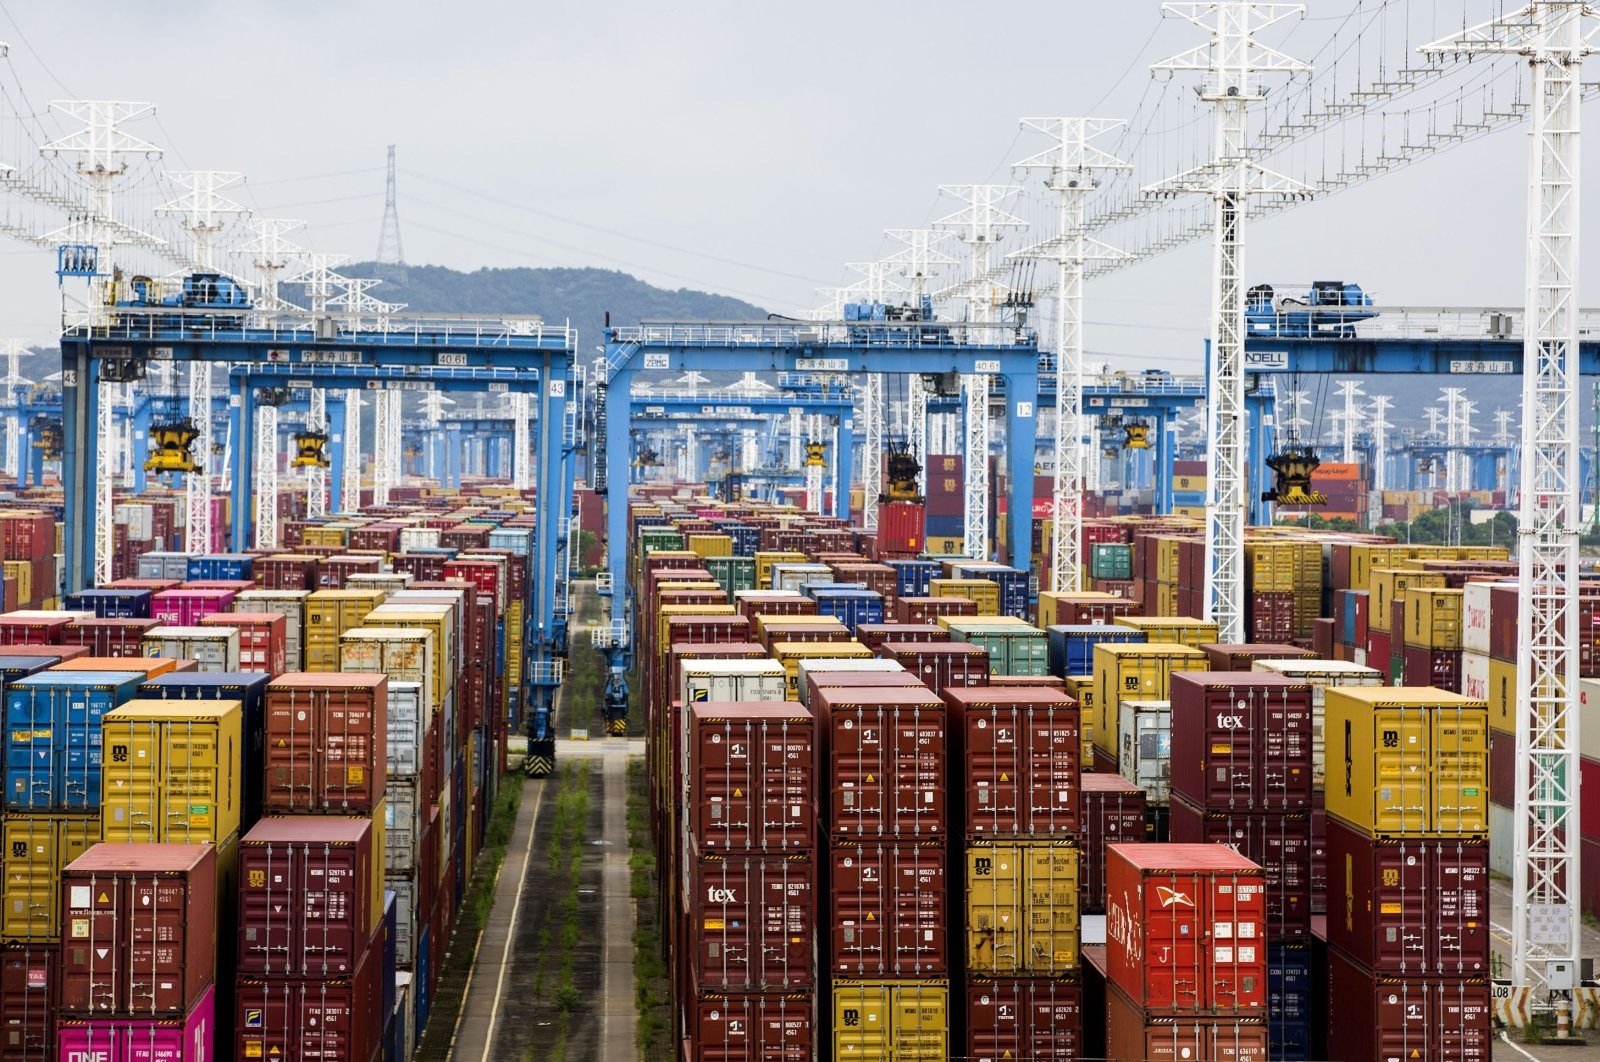 Shipping containers line the storage area at the Ningbo-Zhoushan port in Ningbo, Zhejiang Province, China, Aug. 15, 2021. (Getty Images)